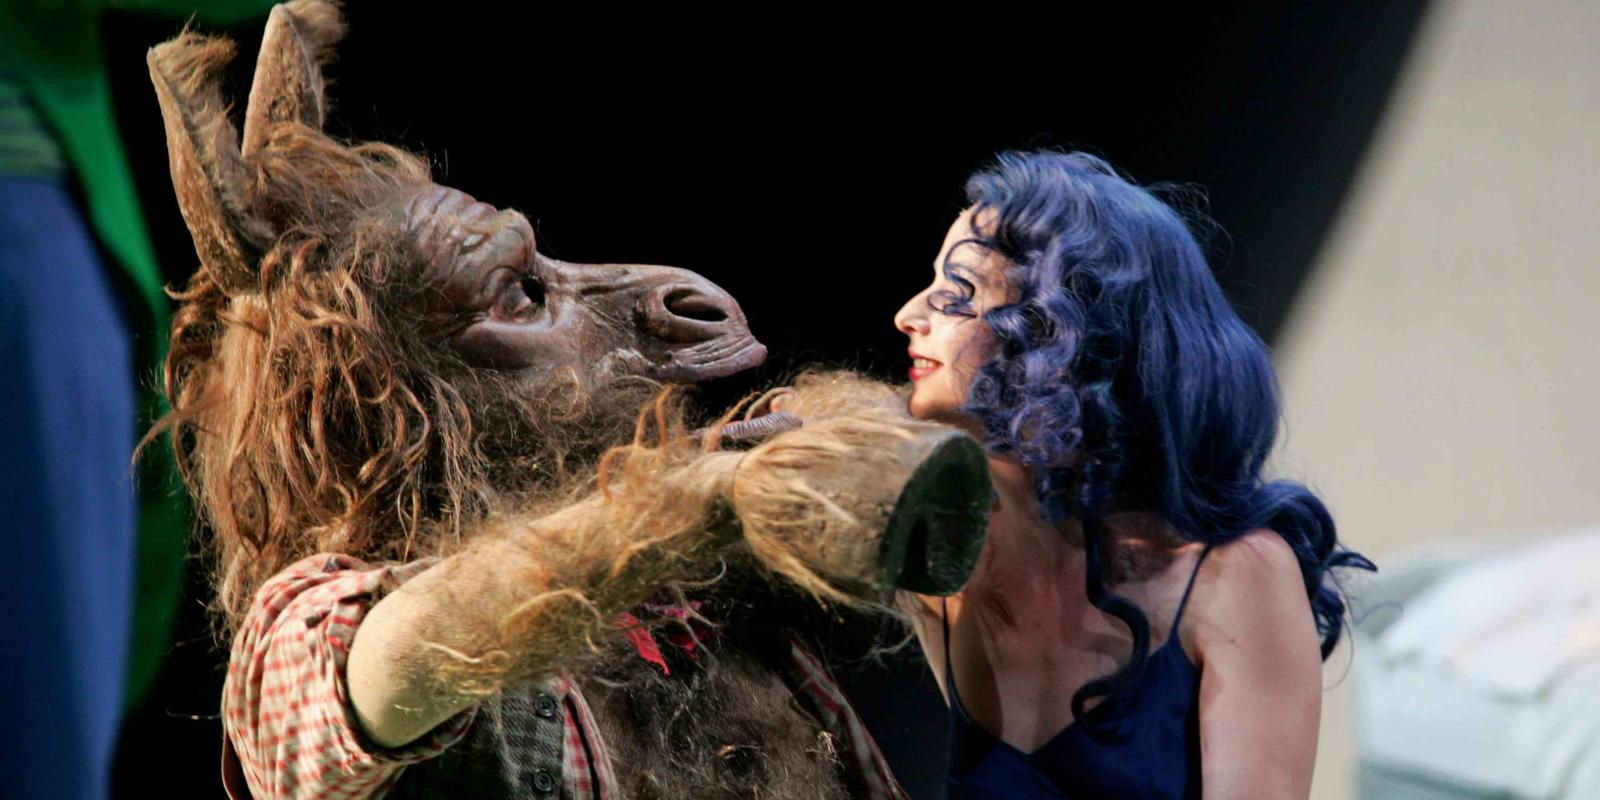 An image of Peter Rose and Sarah Tynan in ENO's 2004 production of A Midsummer Night's Dream